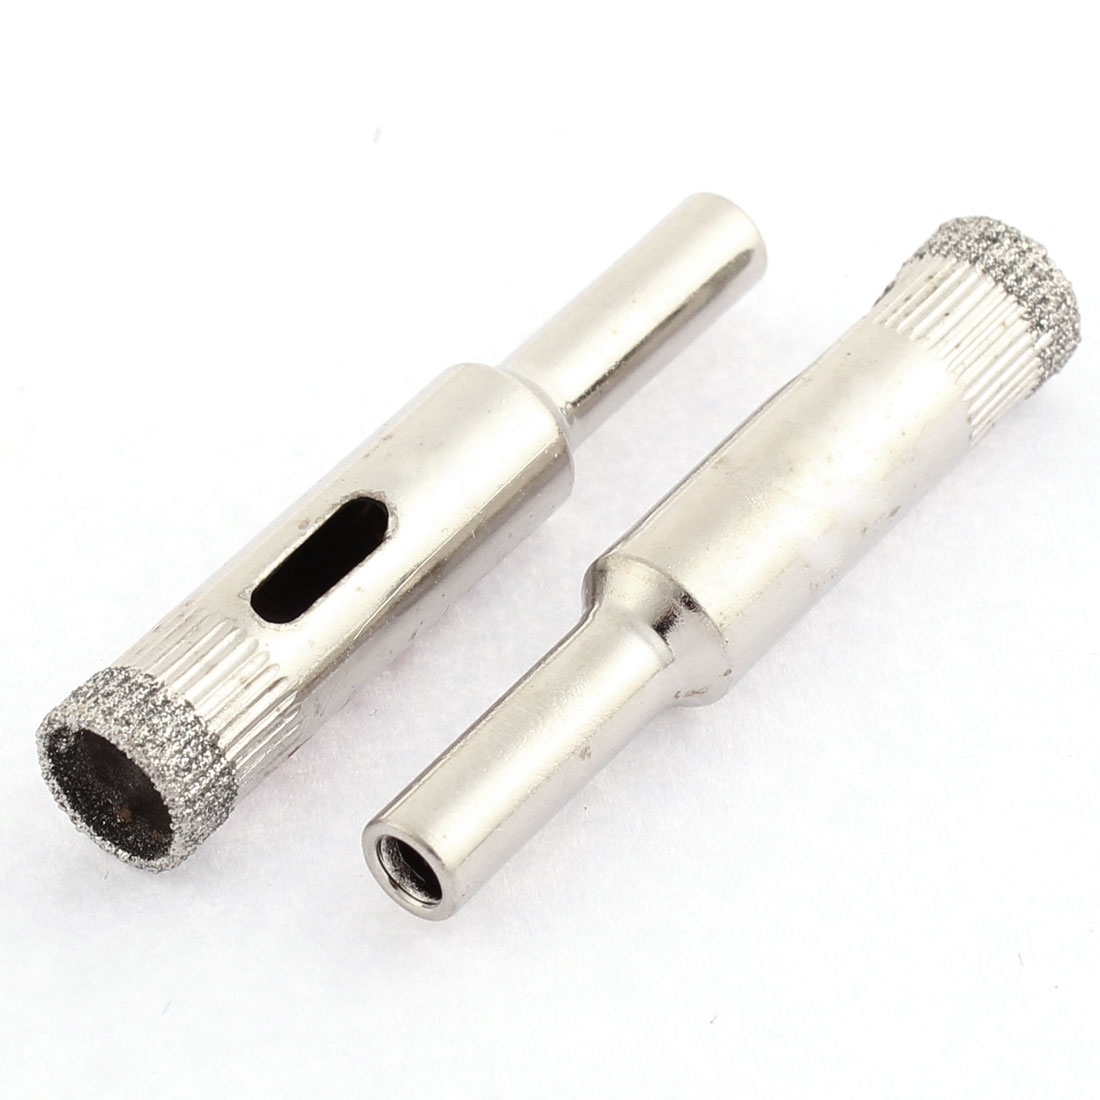 Glass Granite 10mm Cutting Dia Diamond Coated Hole Saw Drill Bit 20pcs